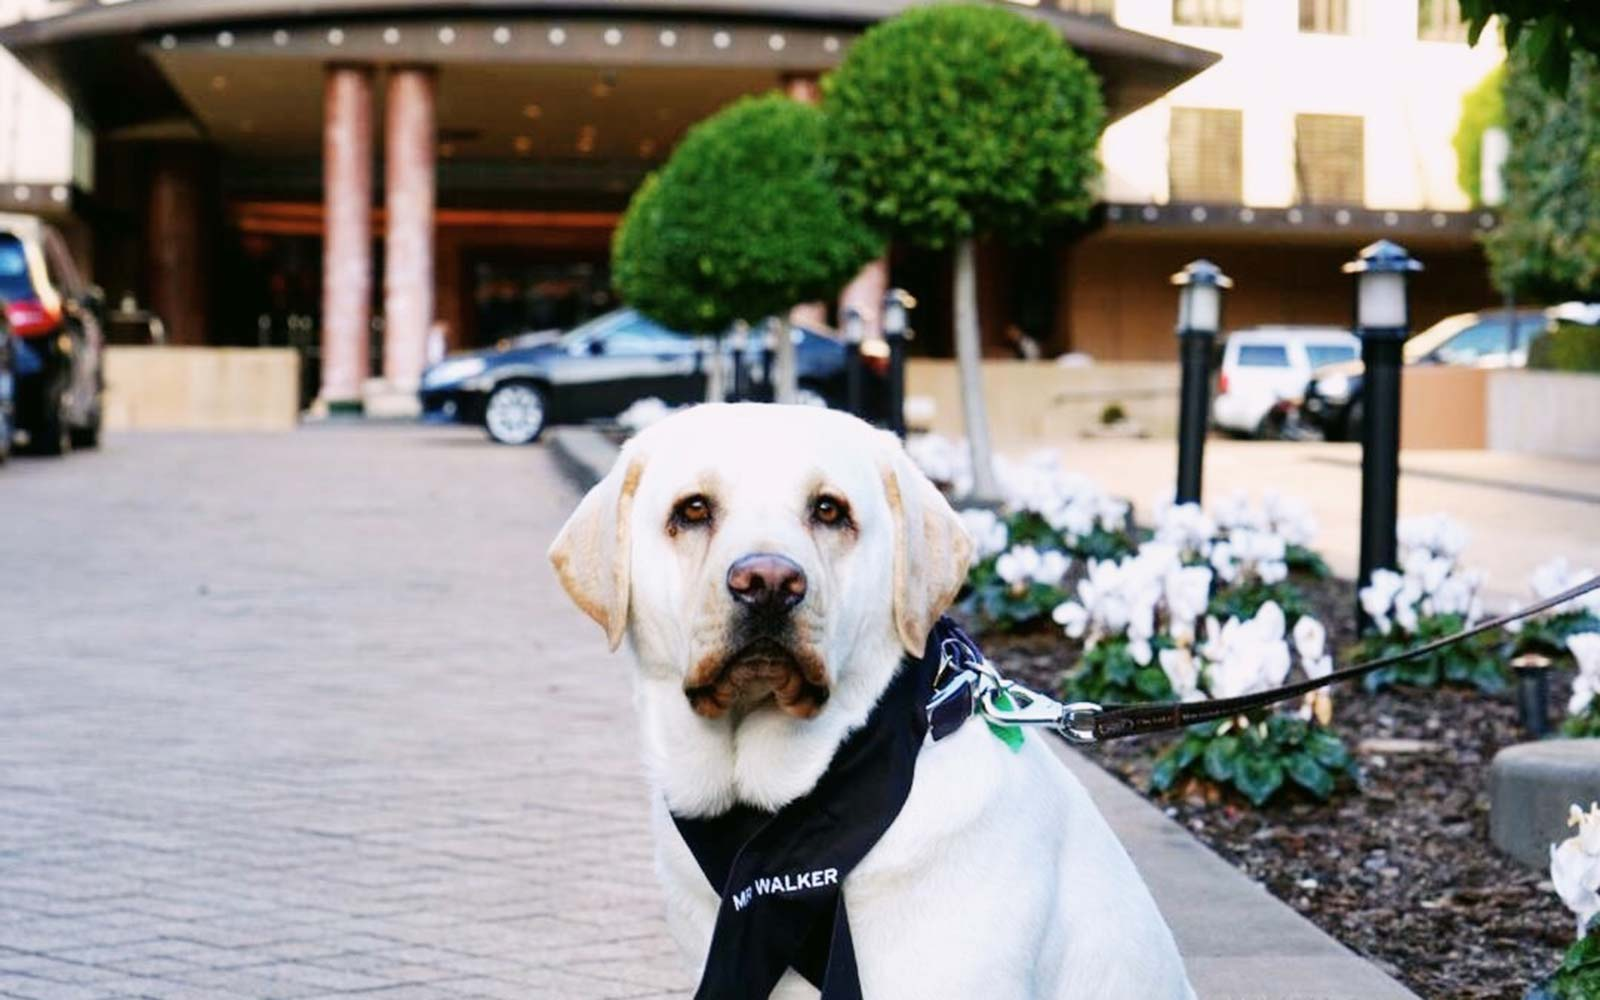 This Handsome Labrador Is a Dog Concierge at a Hotel in Australia